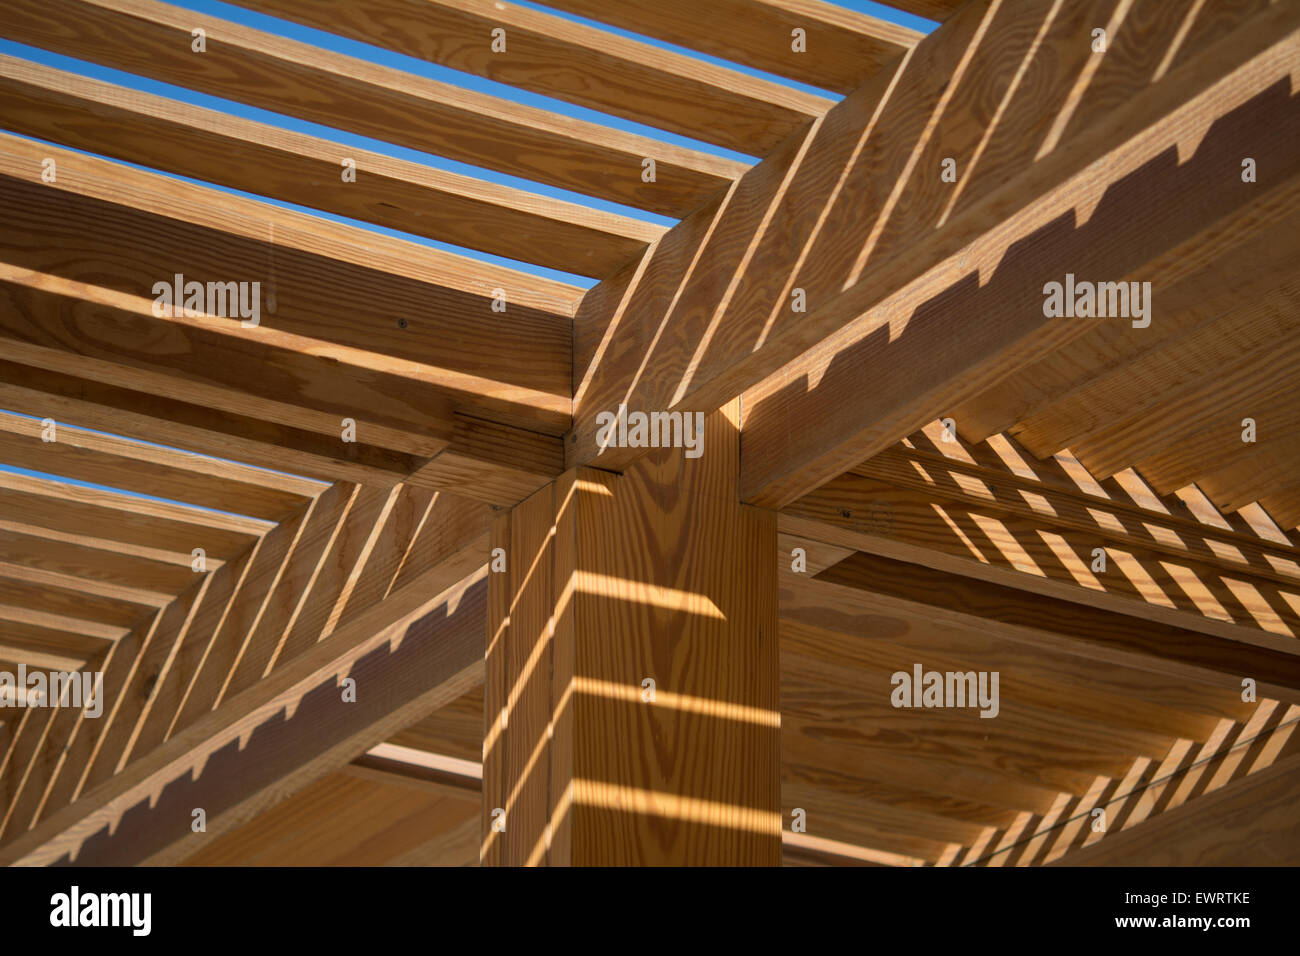 Stock Photo   Wooden Slotted Roof Support Pillar With Sunlight Shining  Through The Slats Onto The Wood Below